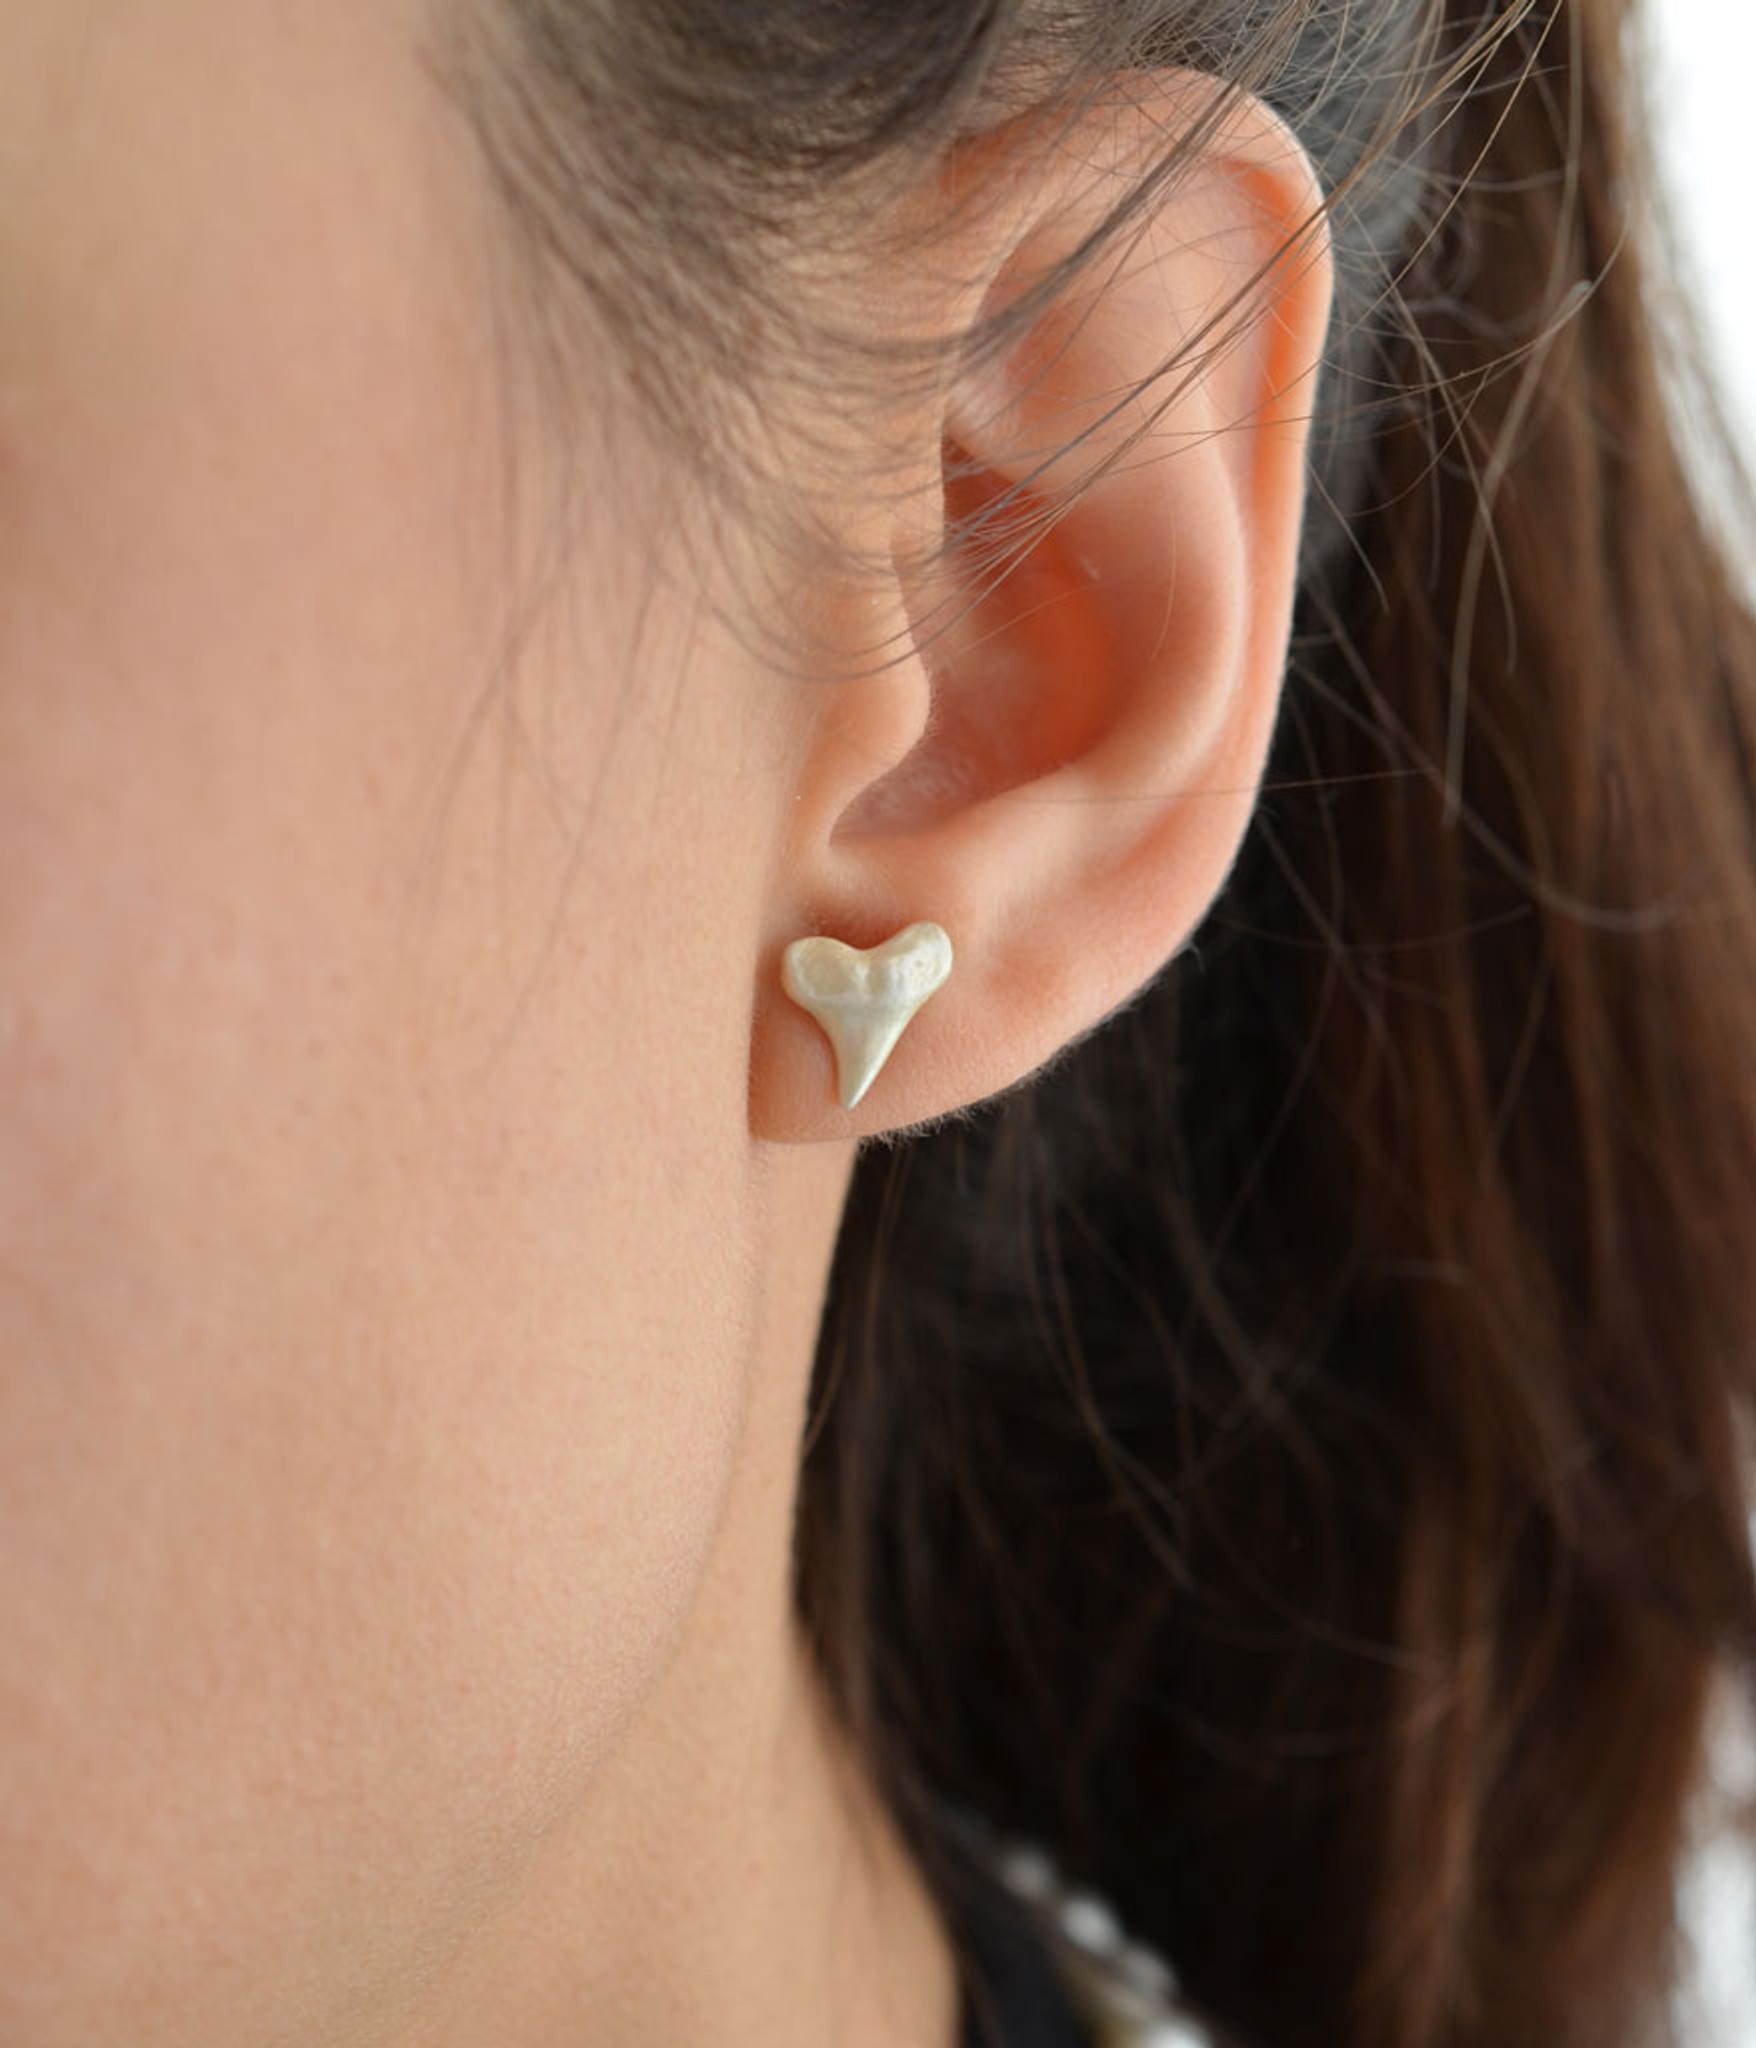 Shark Teeth Earrings with 14k Gold Post (Cruelty- Free  / Solid Sterling Silver coated with White Pearl Enamel) by Jewelry Designer Nektar De Stagni.